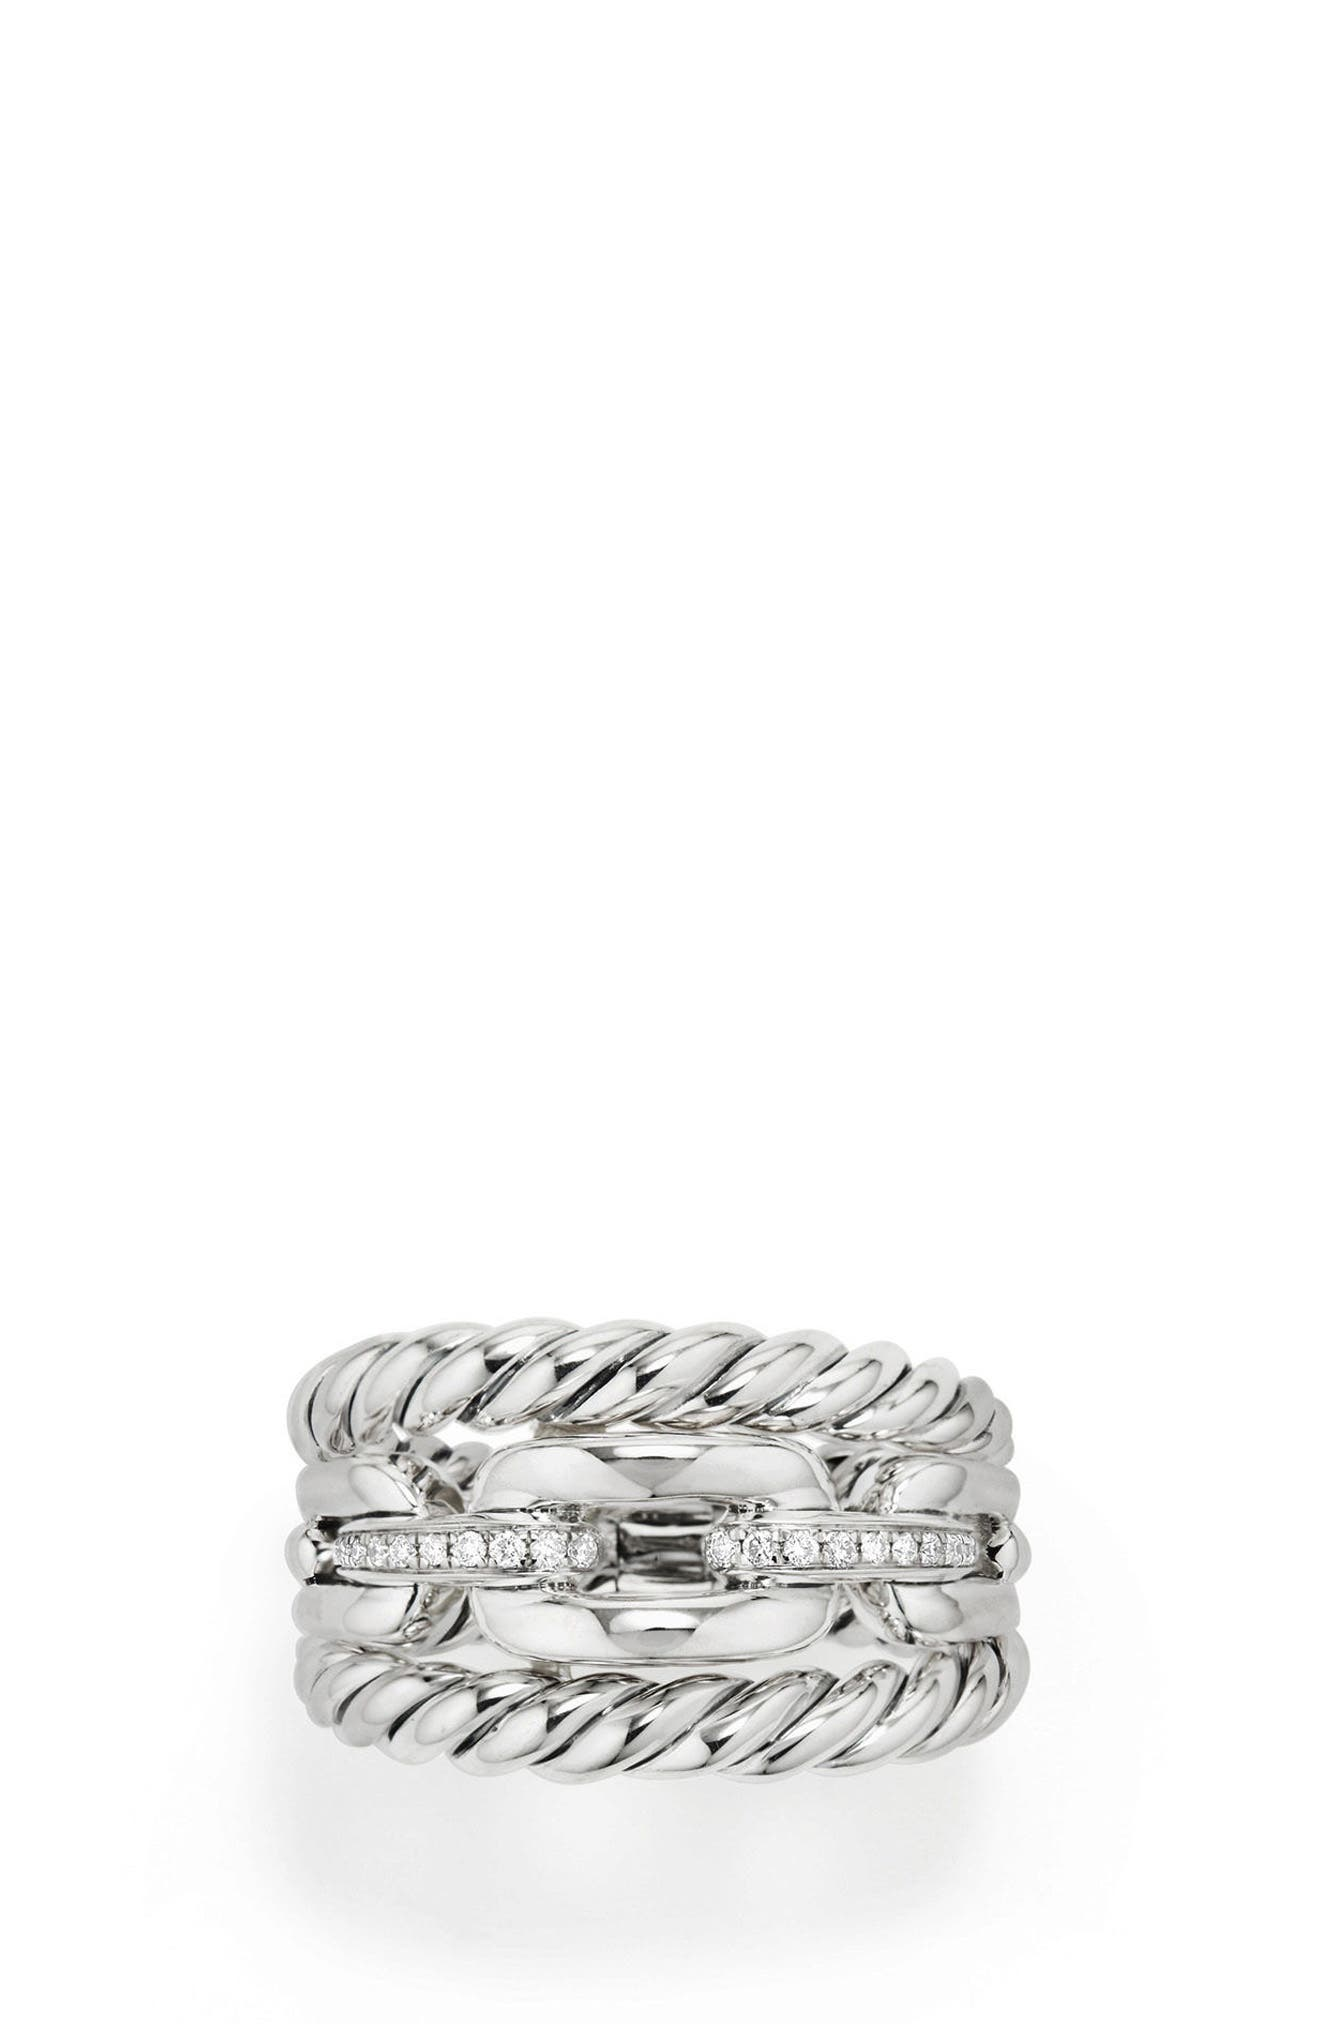 DAVID YURMAN,                             Wellesley Three-Row Ring with Diamonds,                             Alternate thumbnail 3, color,                             SILVER